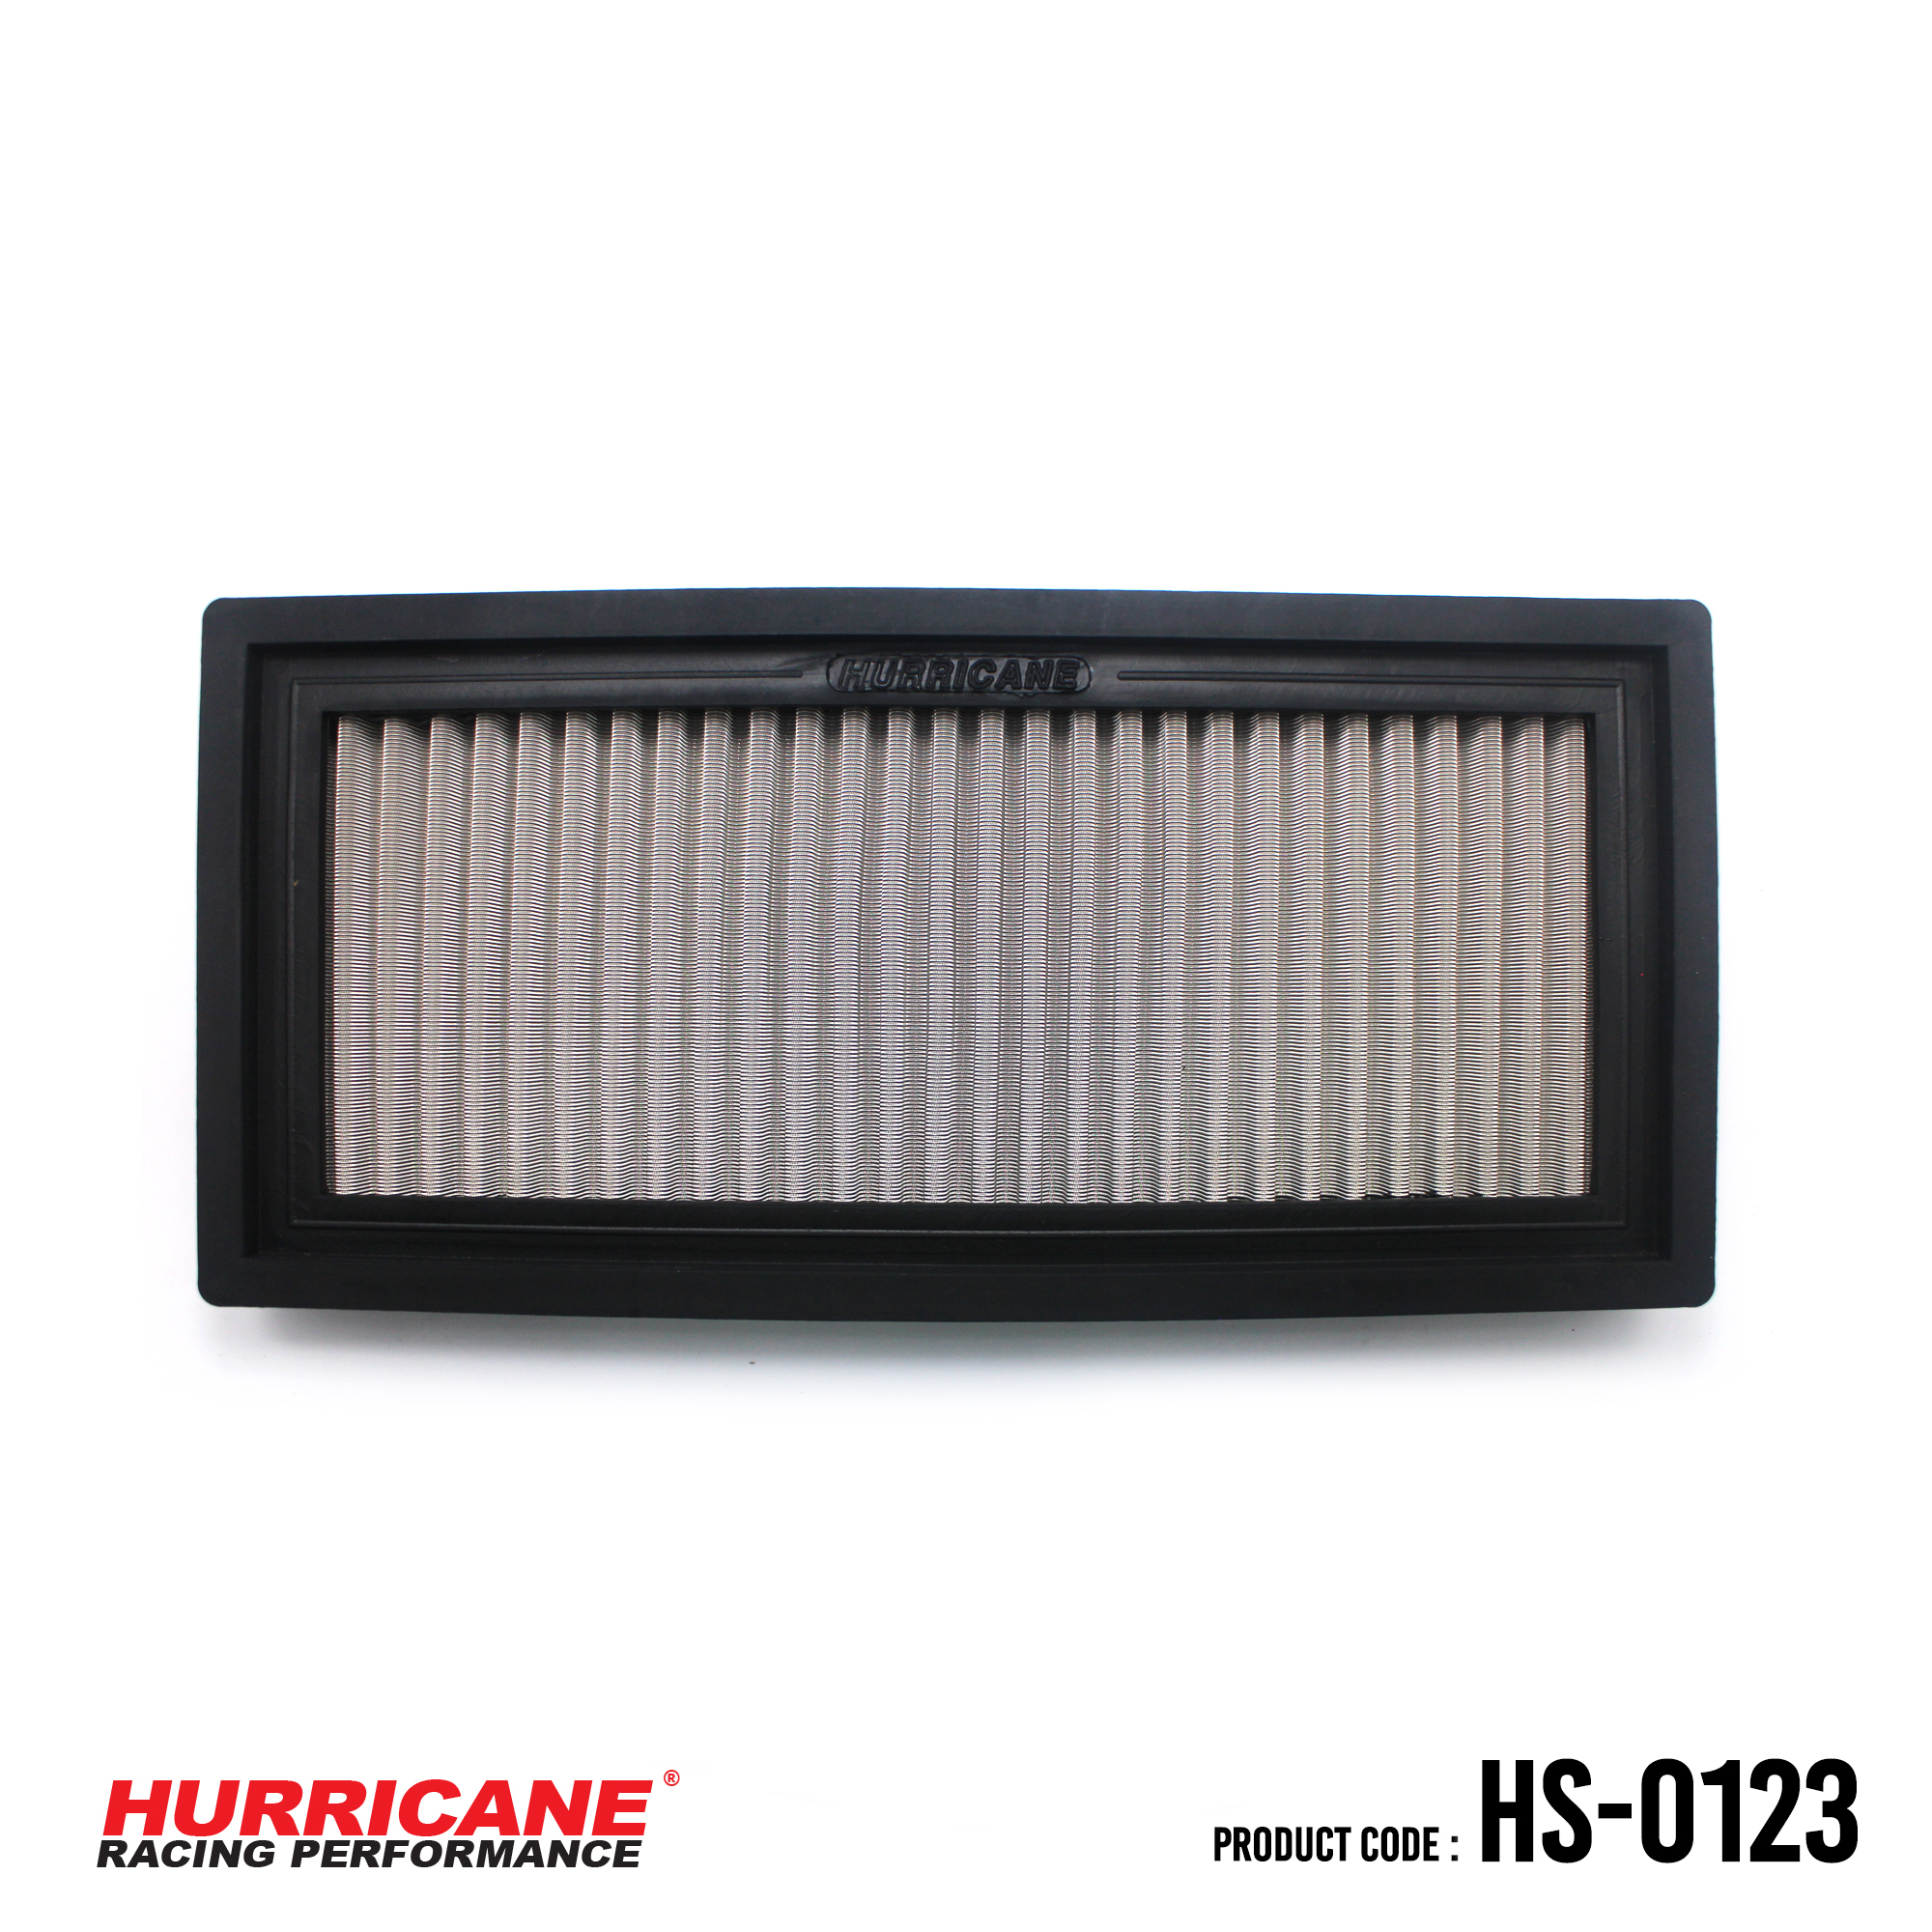 HURRICANE STAINLESS STEEL AIR FILTER FOR HS-0123 Proton